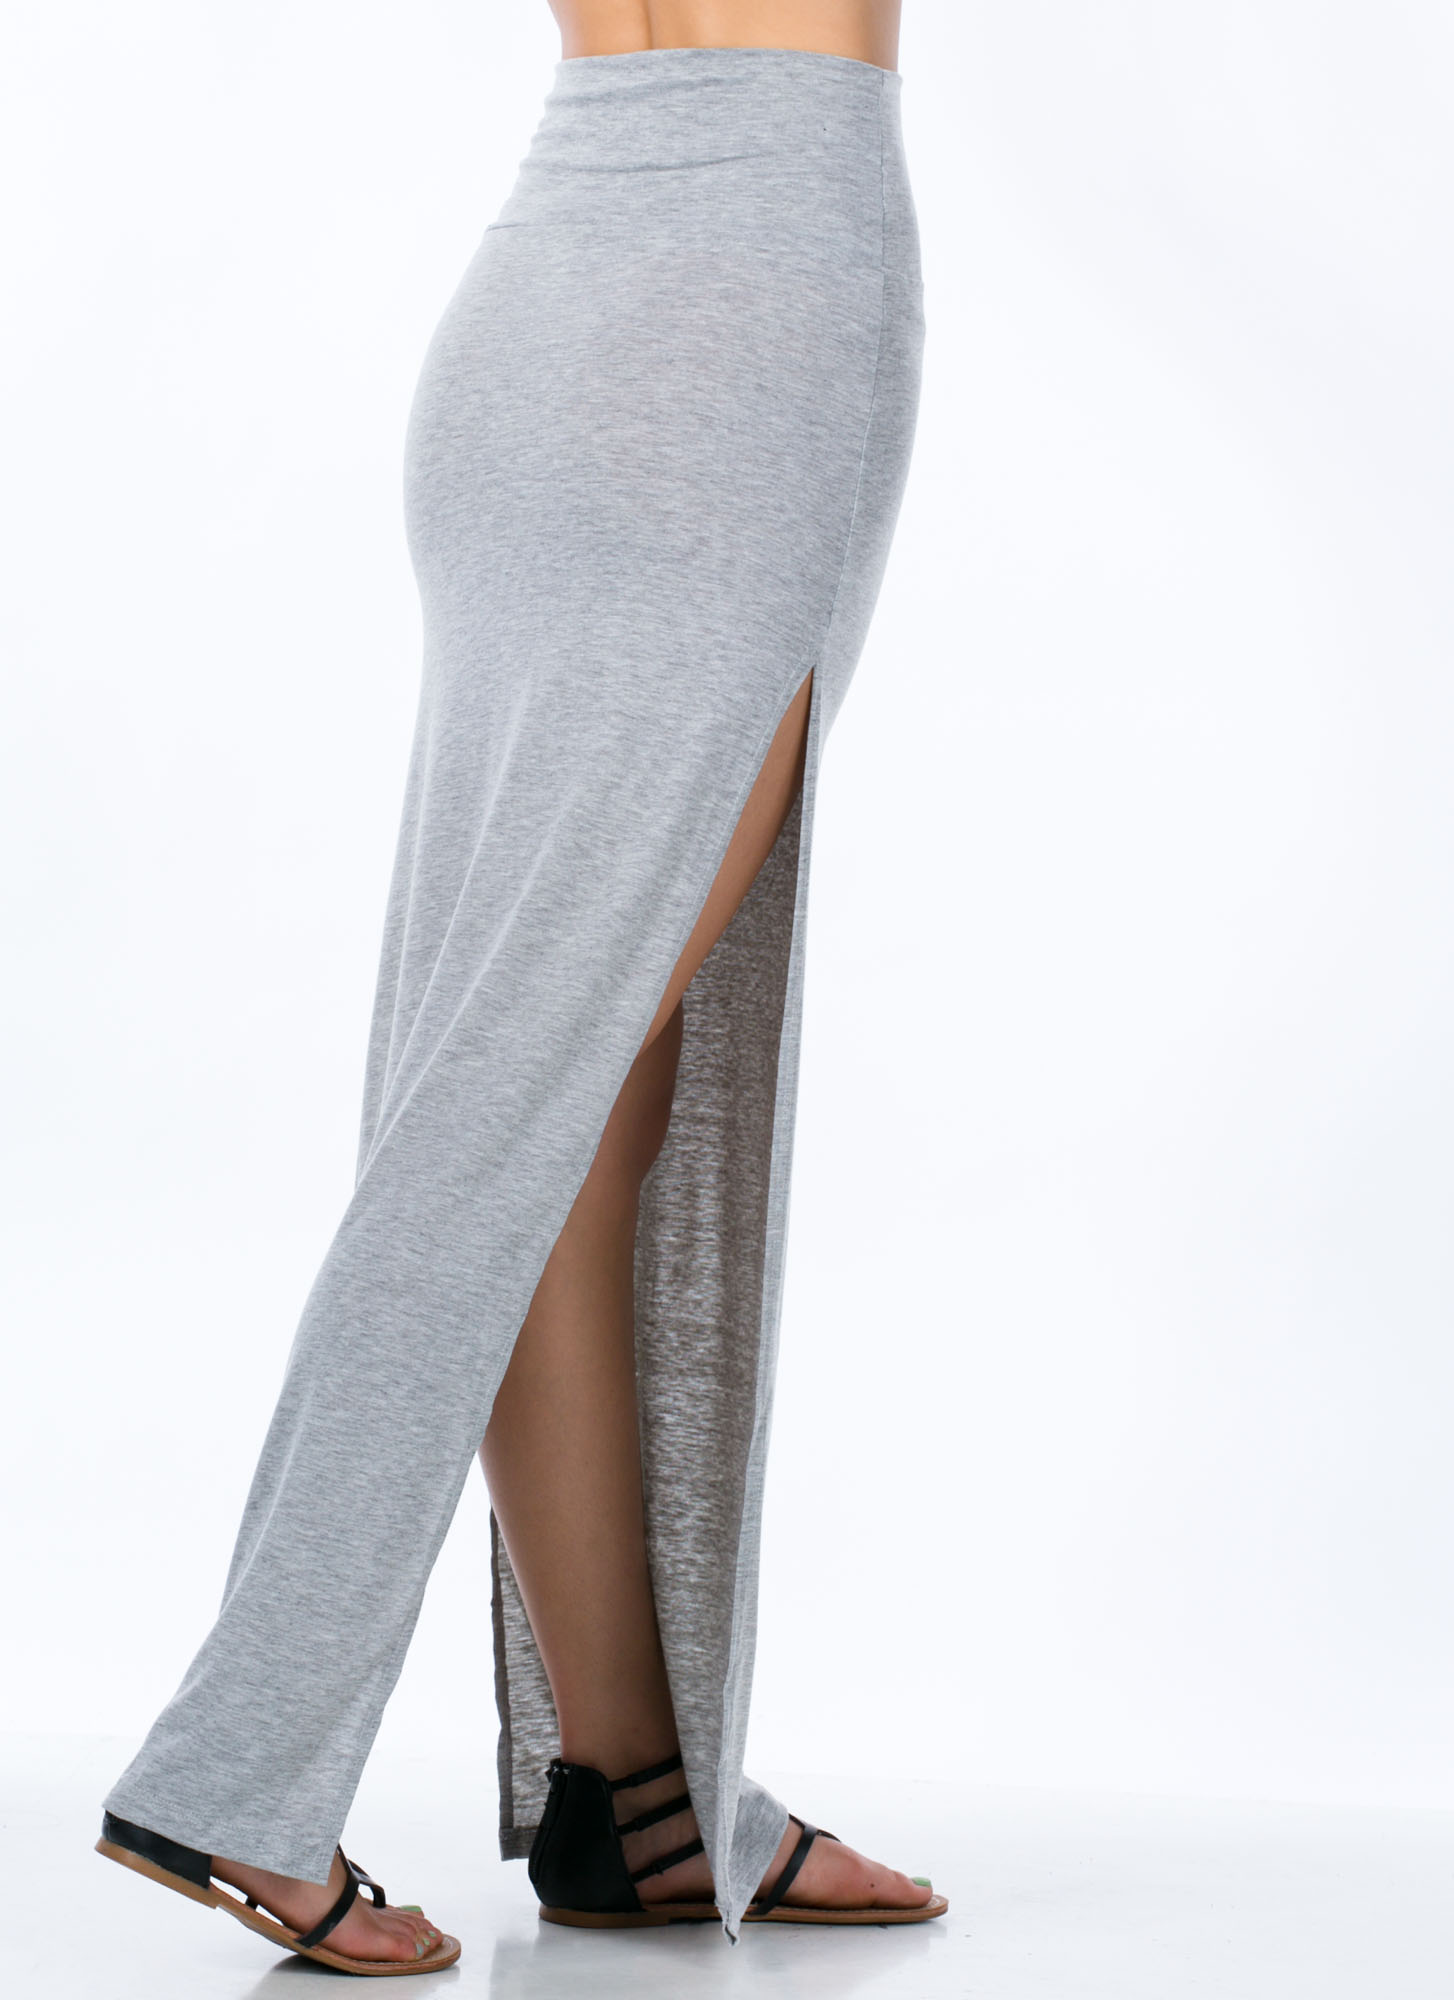 Double Trouble Slit Maxi Skirt HGREY